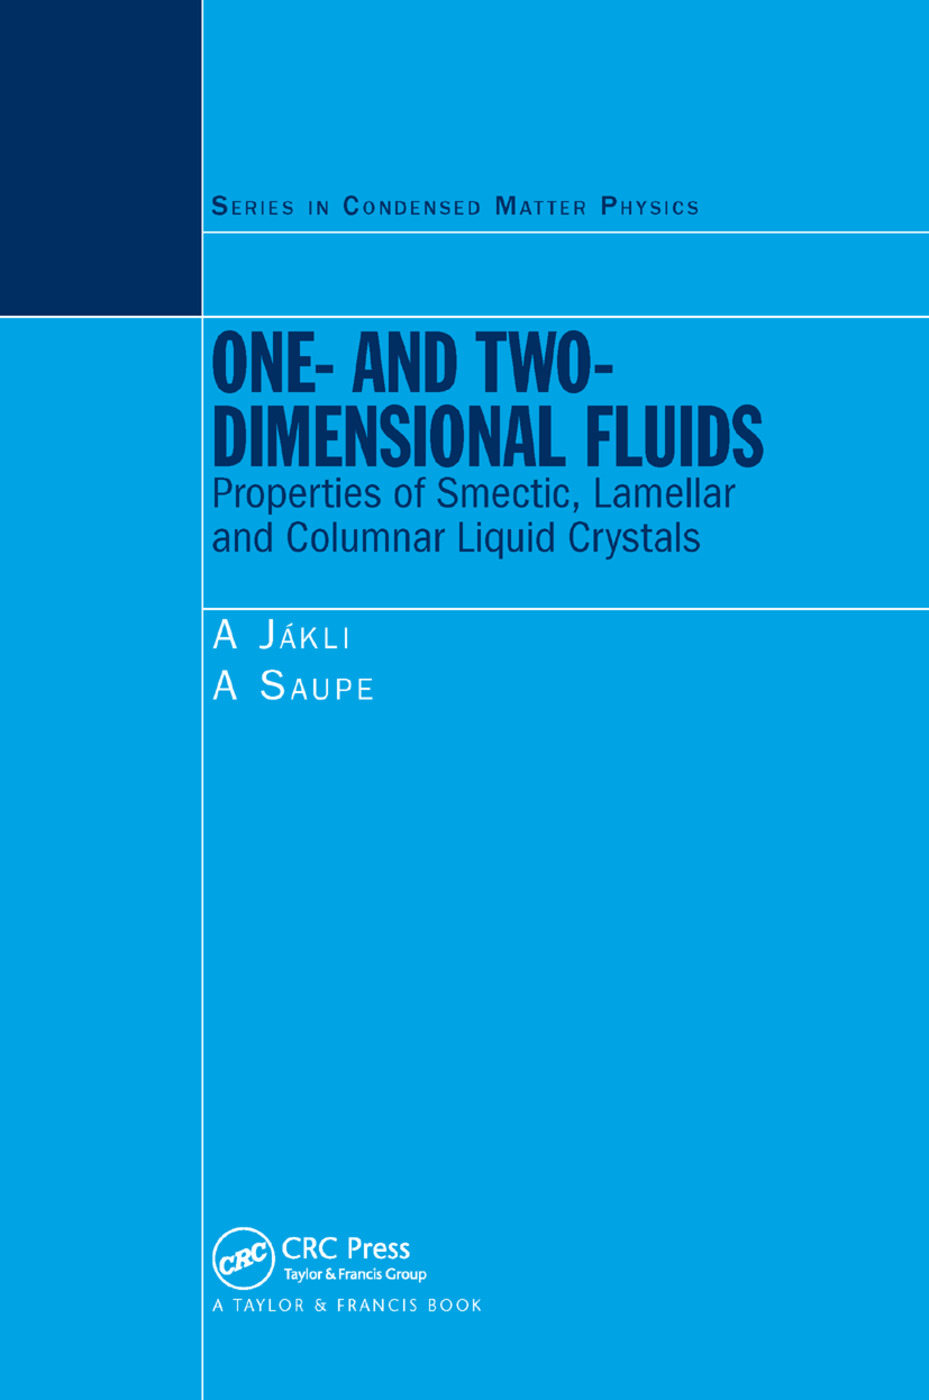 One- and Two-Dimensional Fluids: Properties of Smectic, Lamellar and Columnar Liquid Crystals, 1st Edition (Paperback) book cover